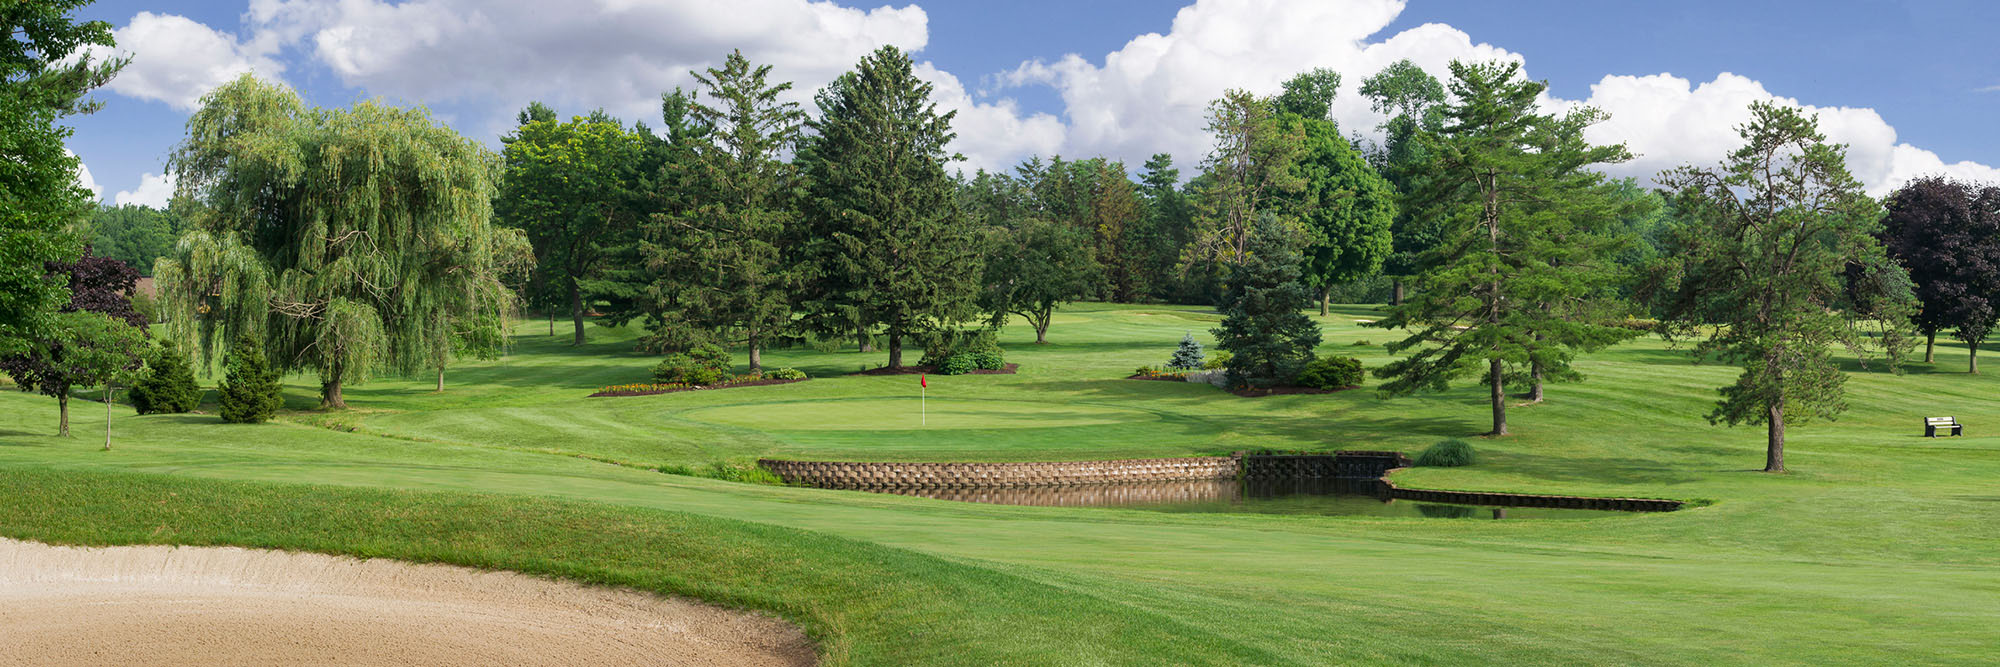 Golf Course Image - Out Door Country Club No. 14